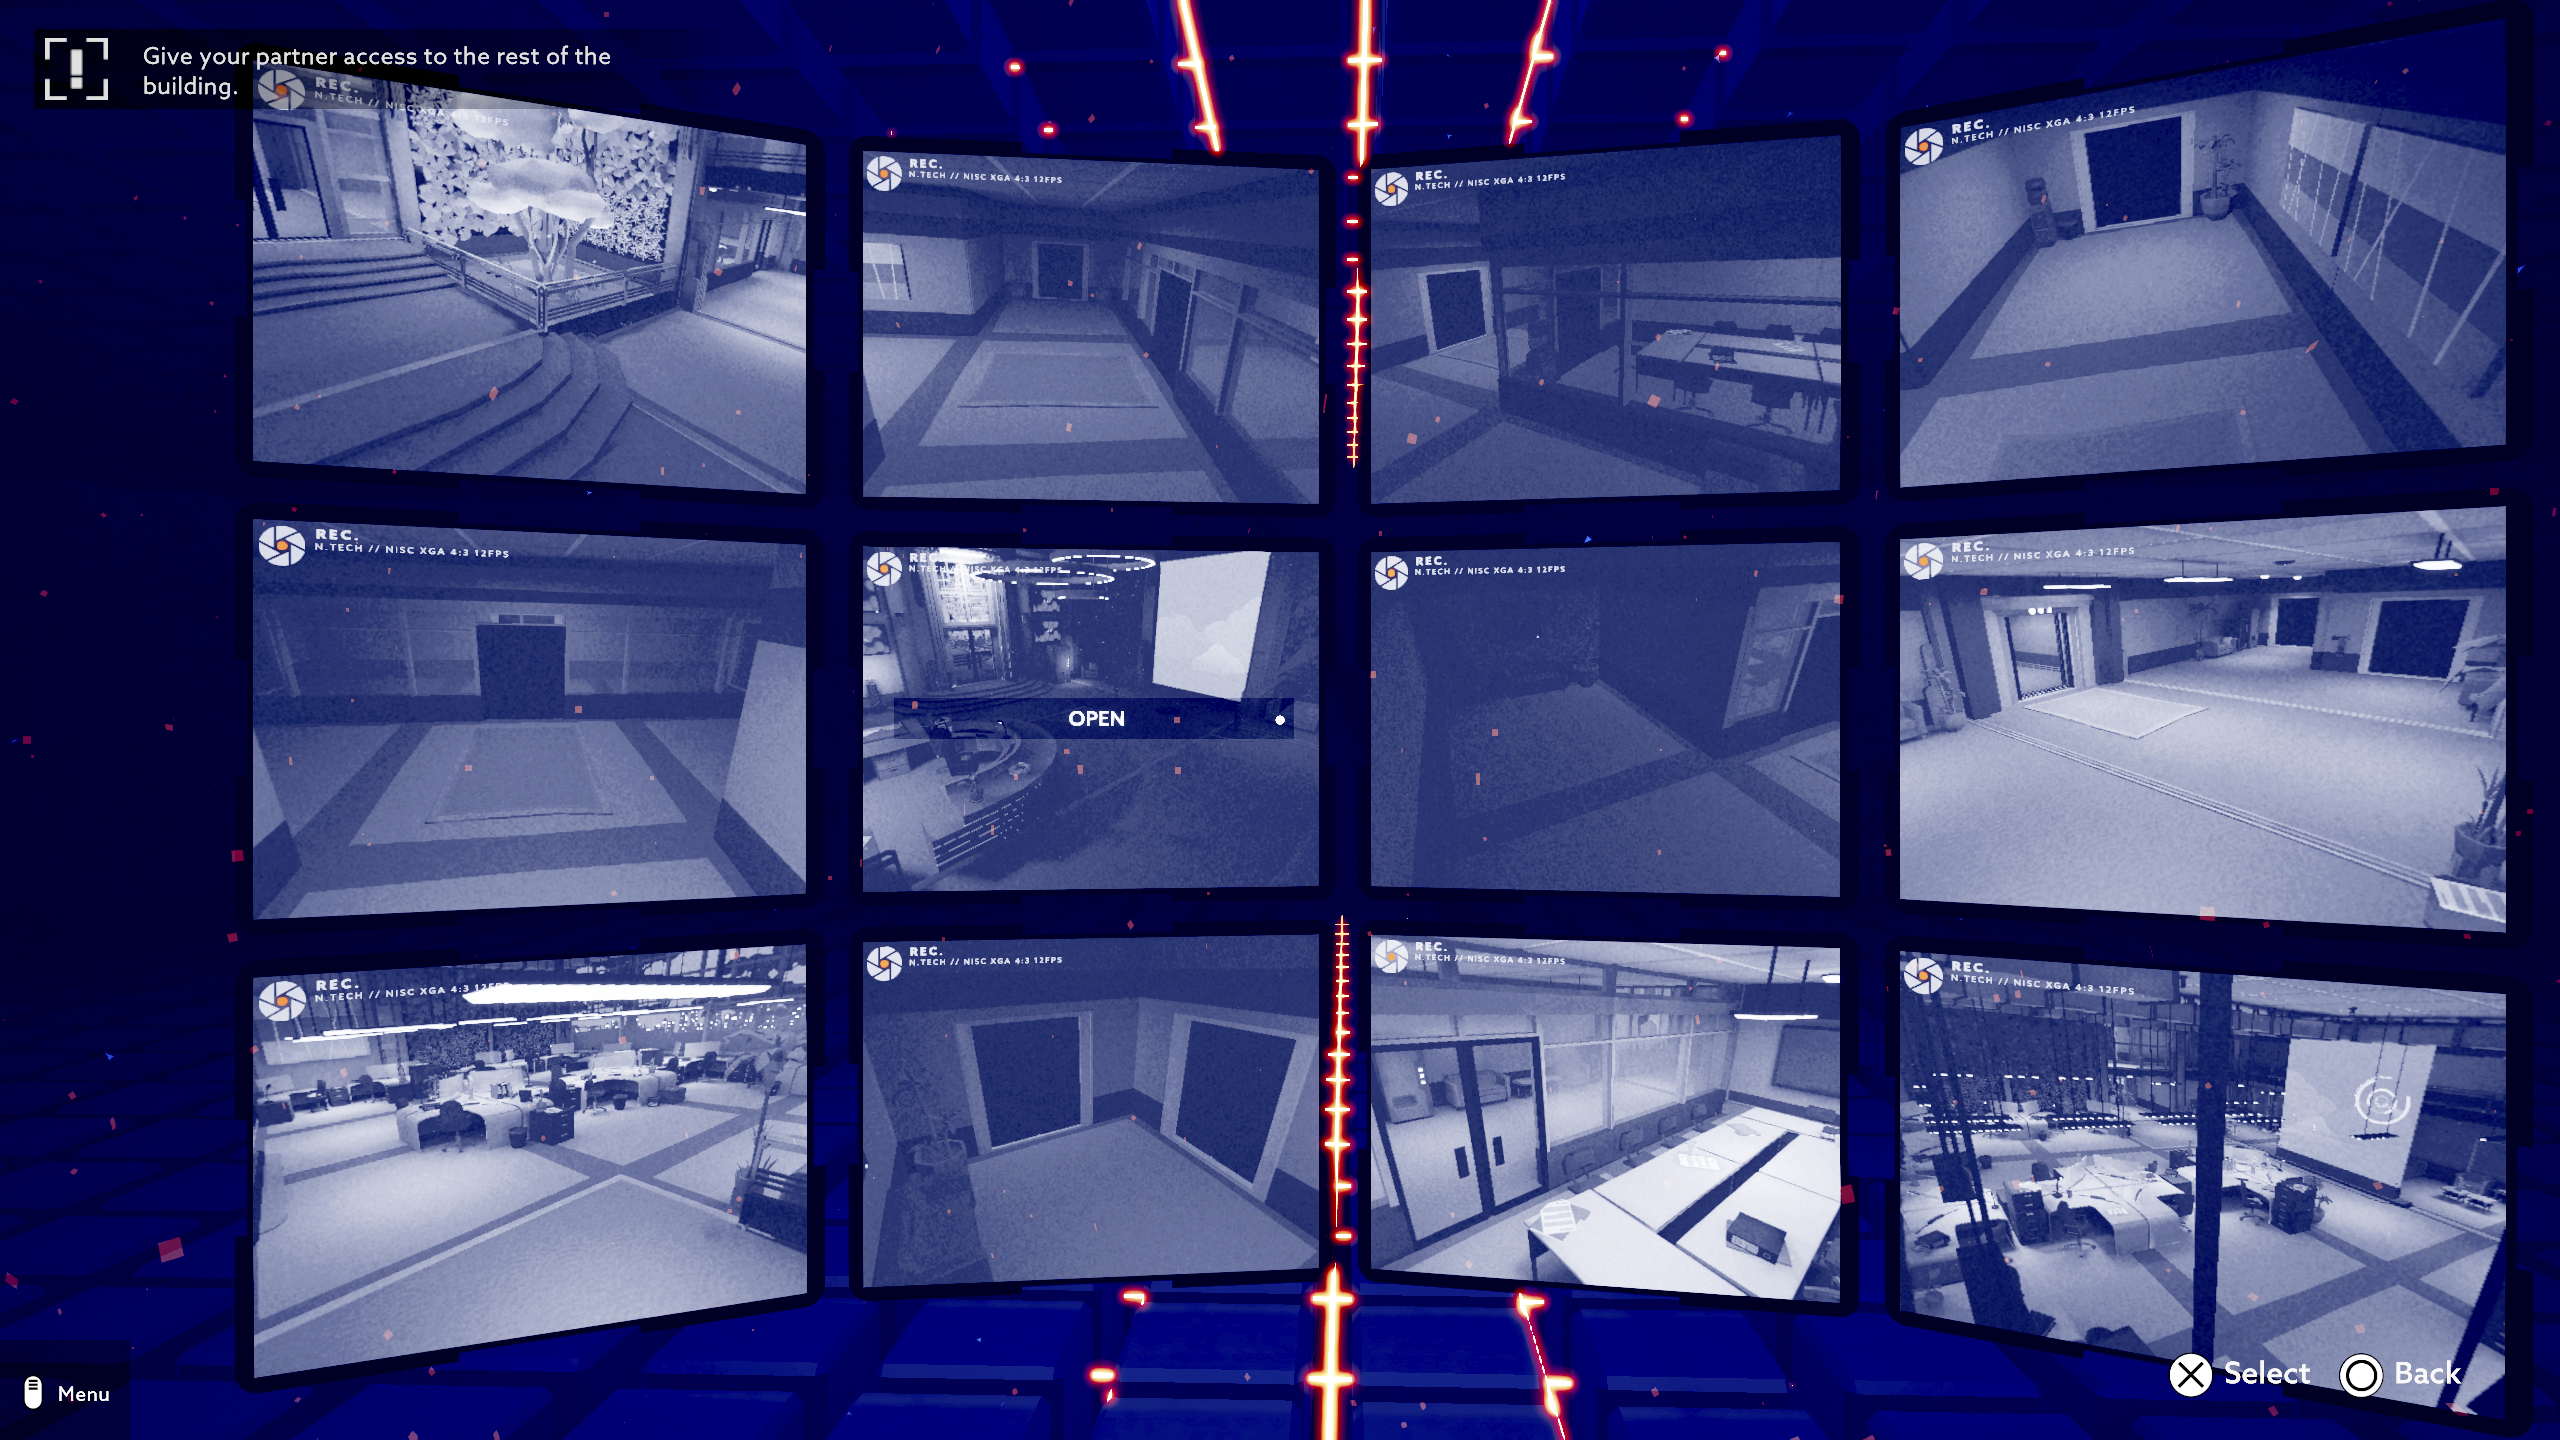 Operation Tango screenshot - a bank of security camera screens showing different locations